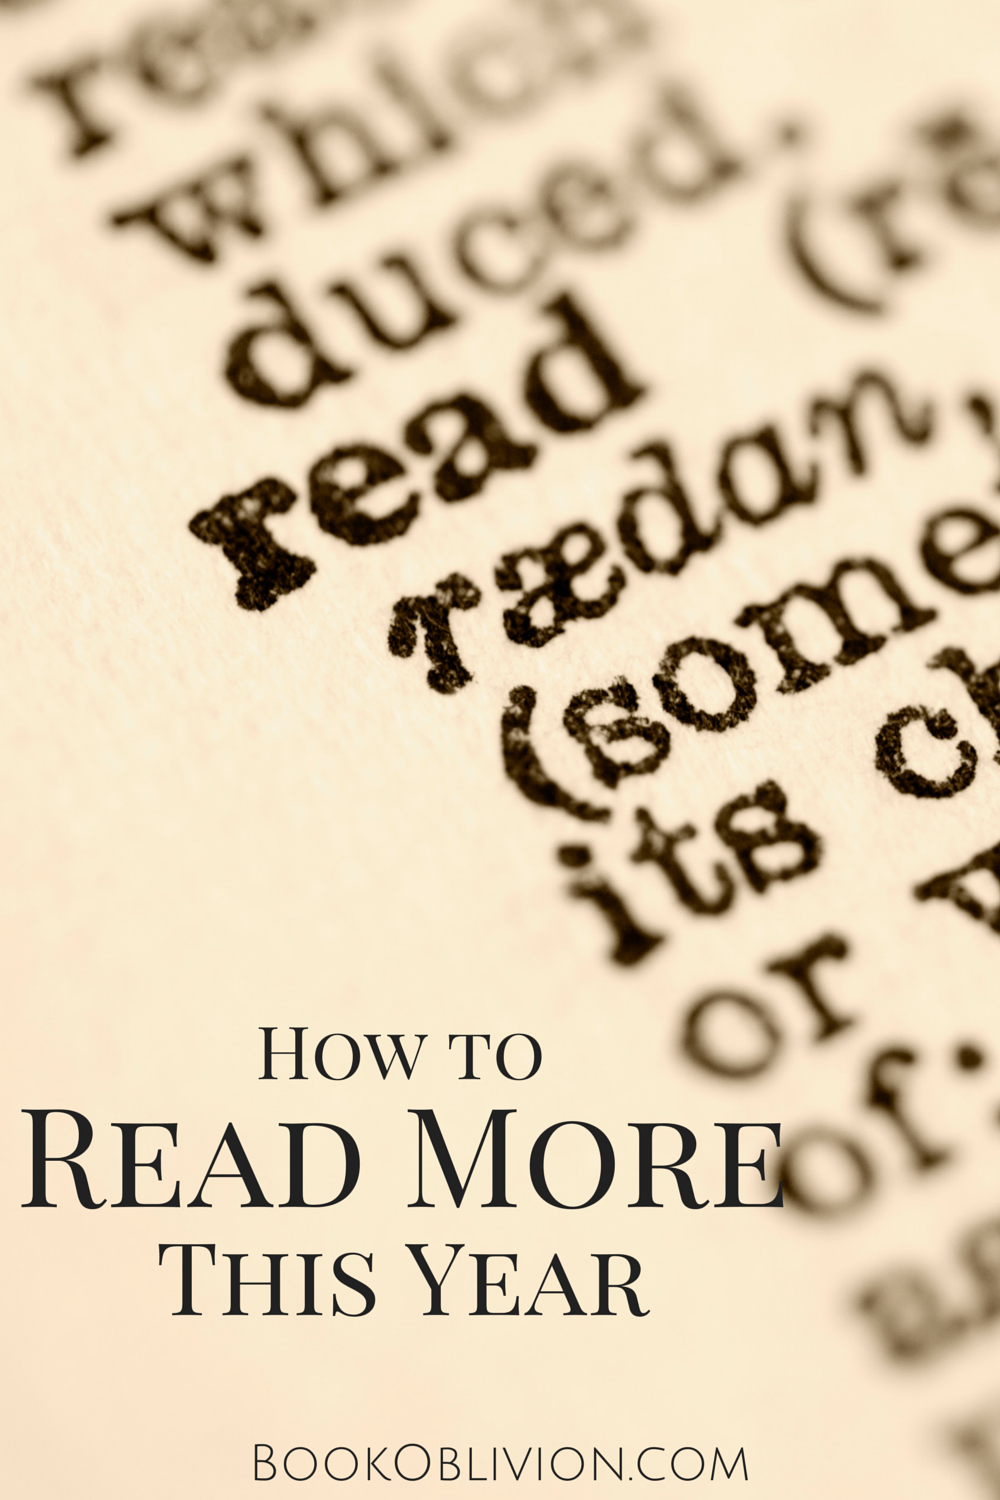 If you want to increase the number of books you read this year, but aren't sure how you'll find the time, then check out this series of posts that go over ideas and resources to help you achieve your goal to read more this year.